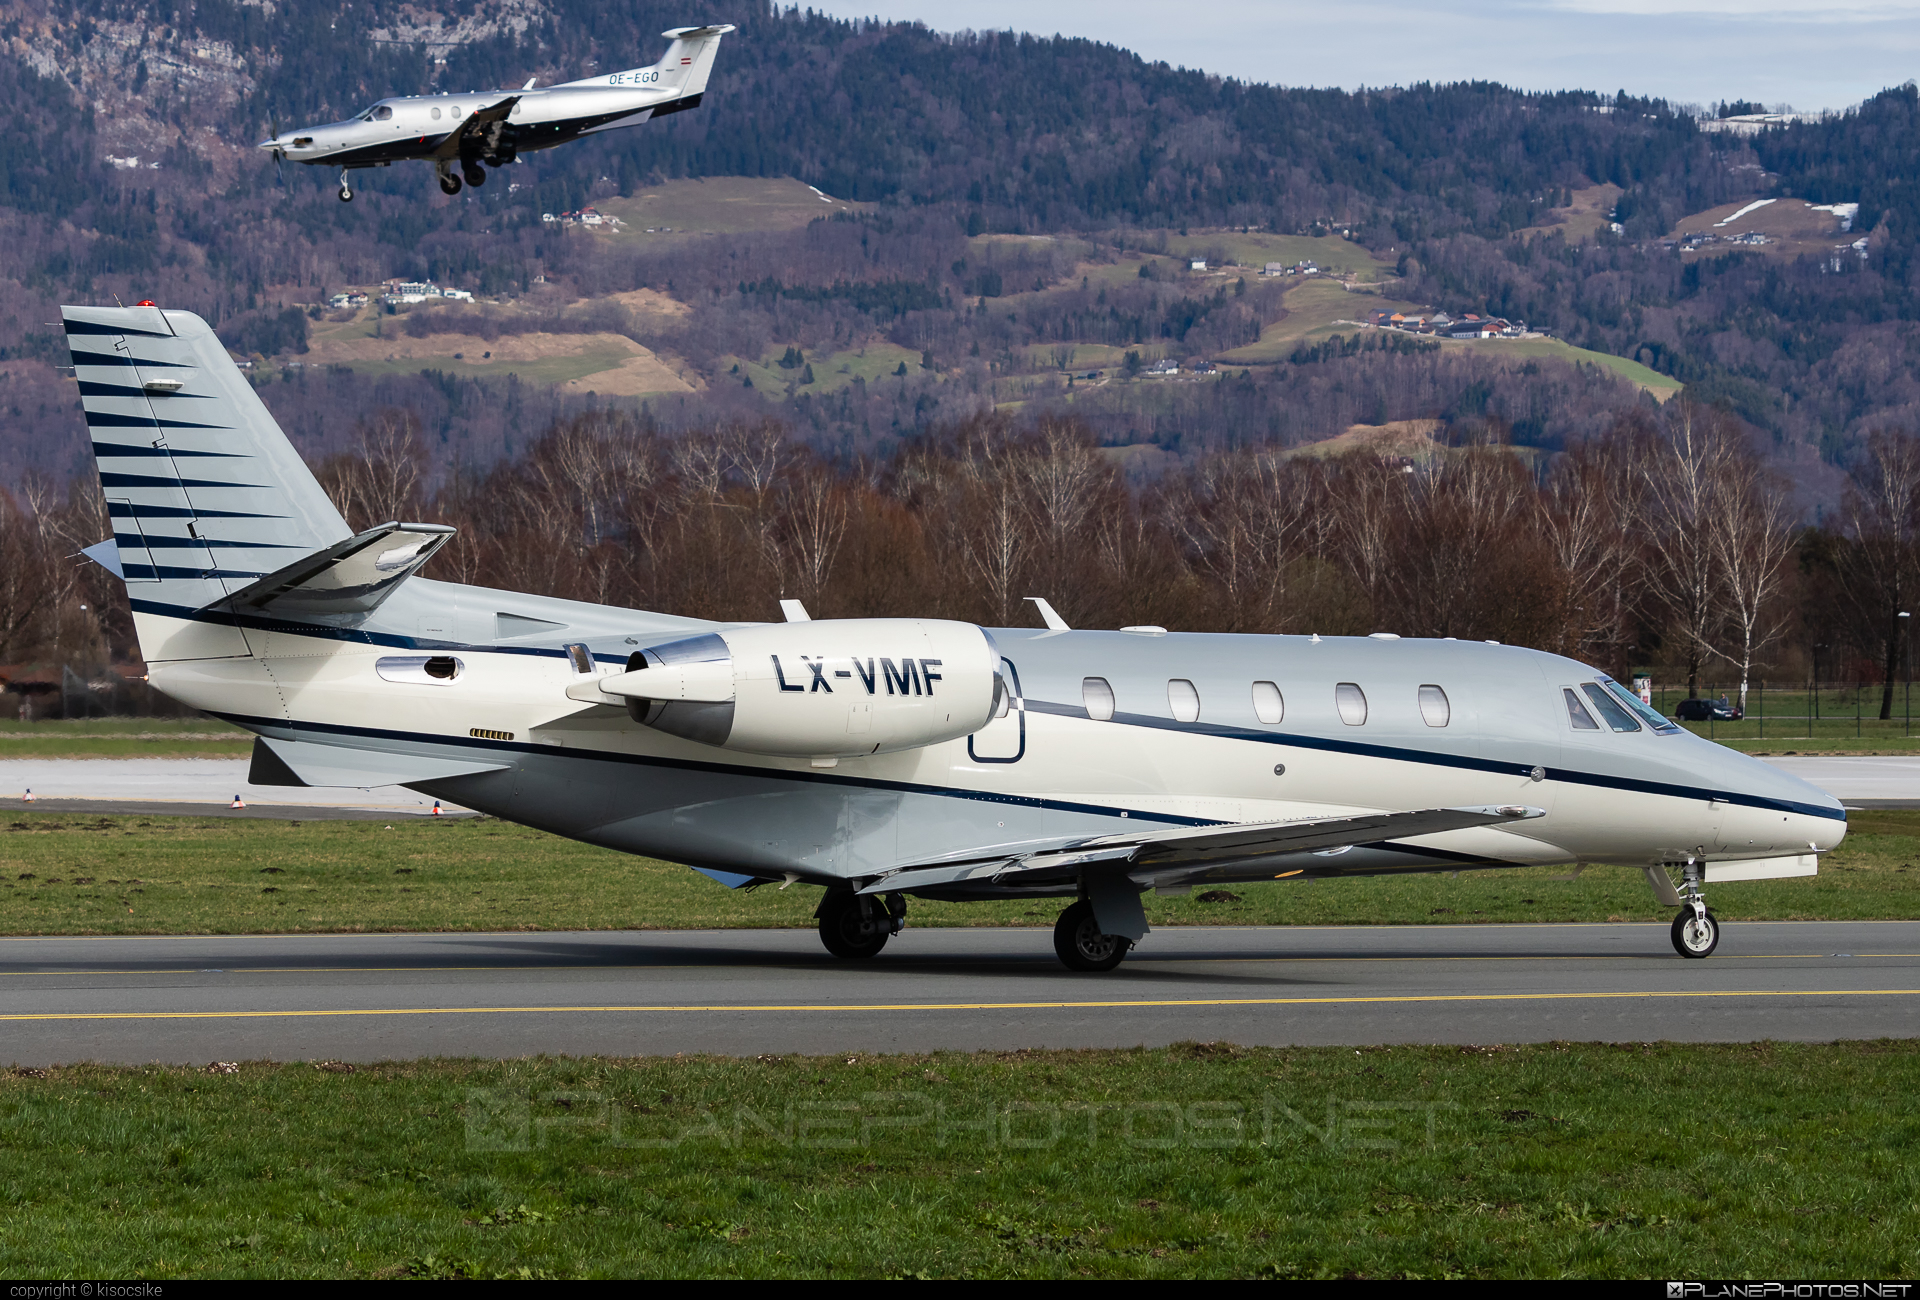 Cessna 560XL Citation Excel - LX-VMF operated by Luxaviation #cessna #cessna560 #cessna560citation #cessna560xl #cessna560xlcitationexcel #cessnacitation #citationexcel #luxaviation